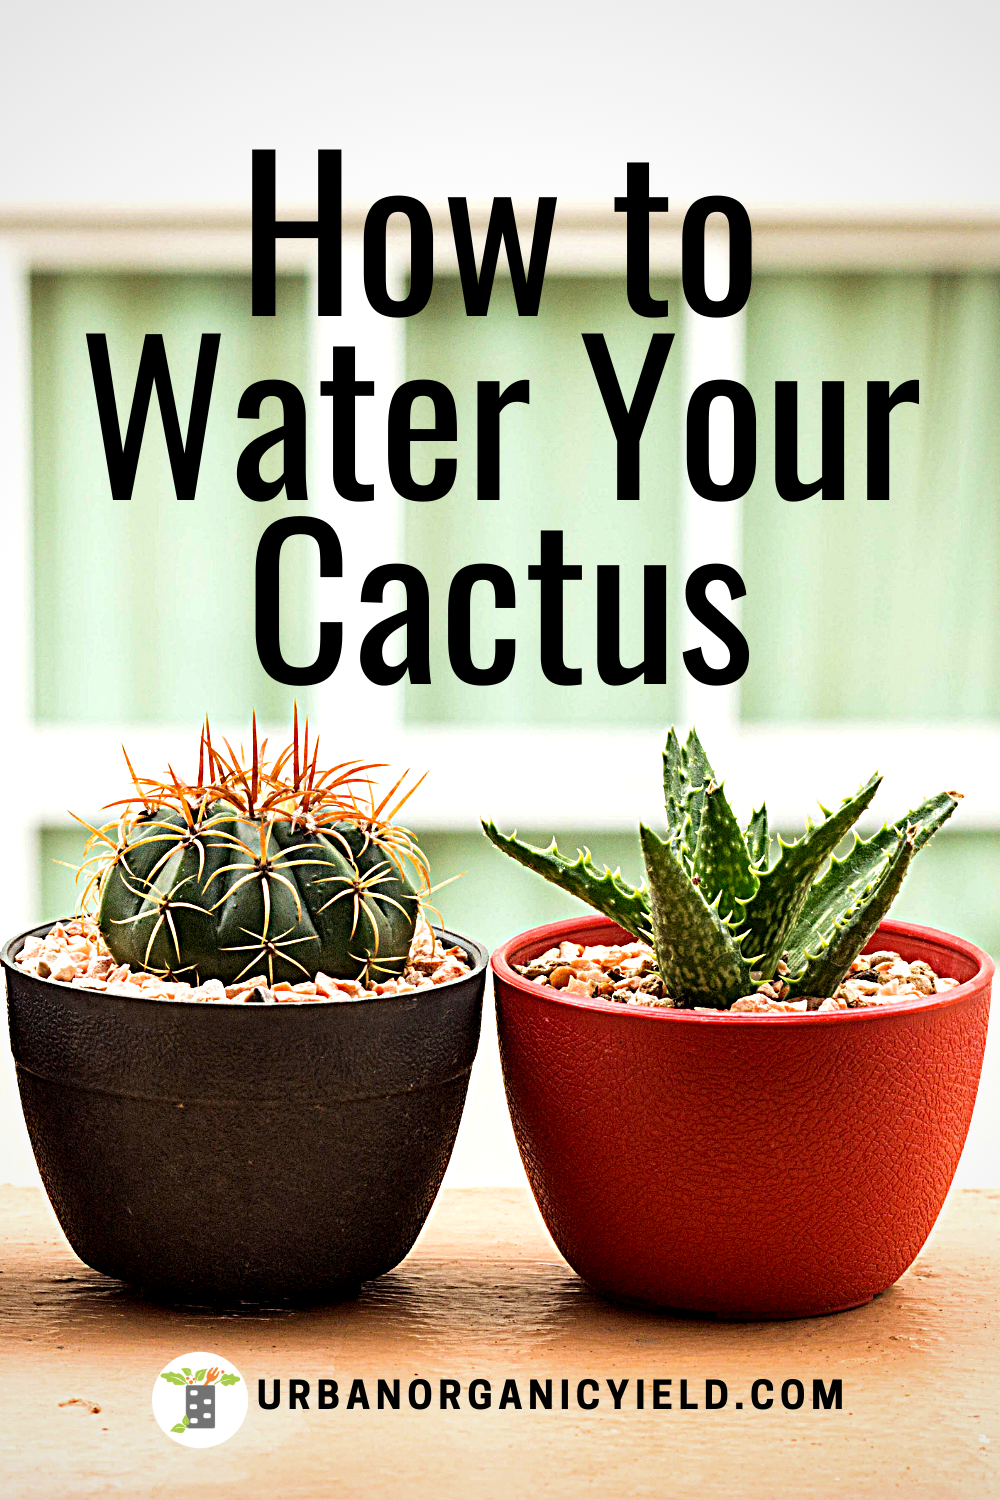 How Often To Water Cactus Indoors (Tips To Keep Them Alive